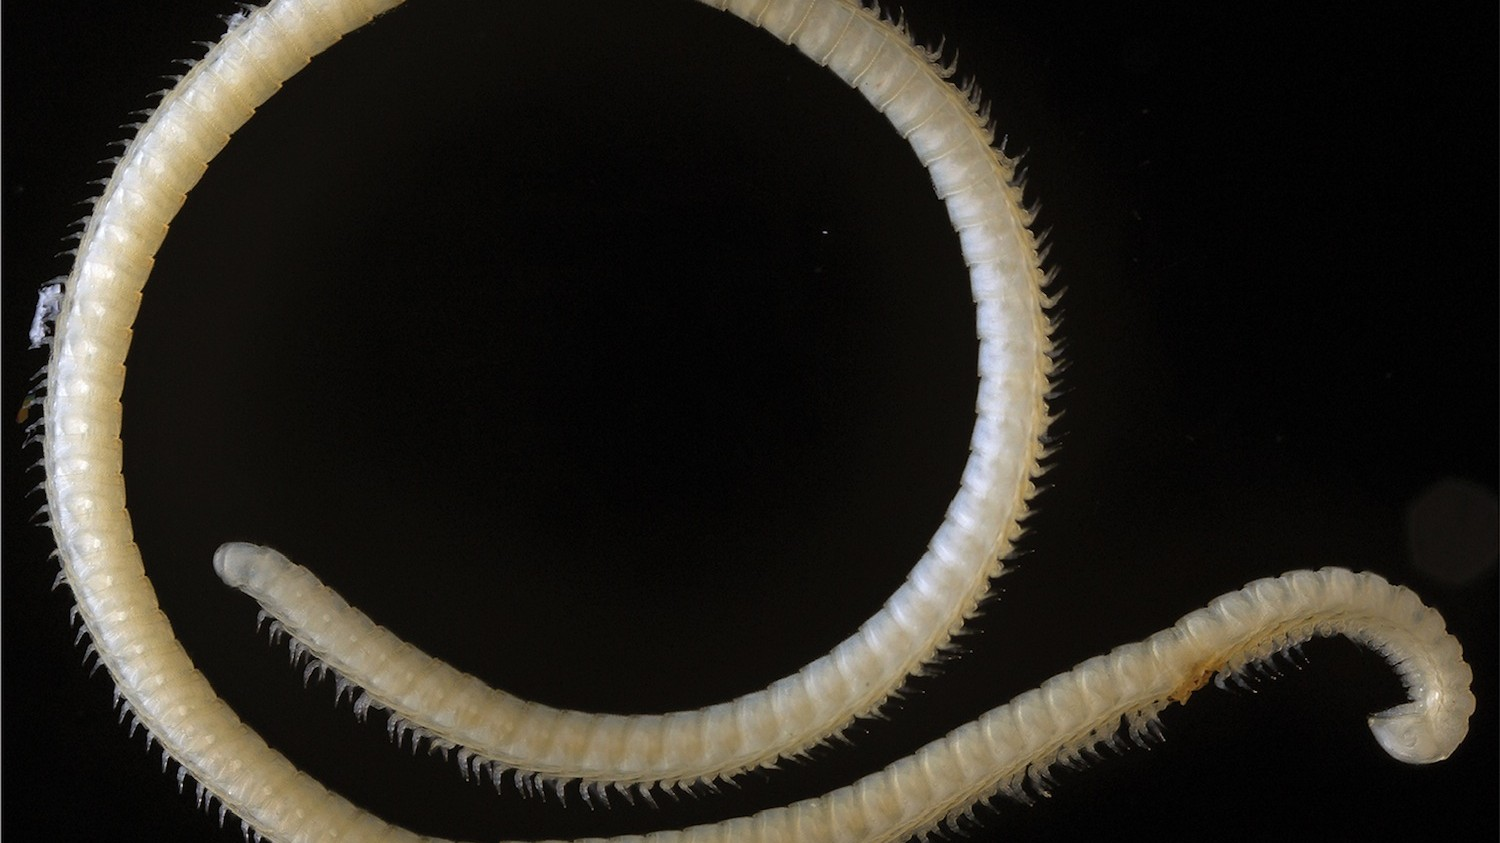 This Newly Discovered Millipede Has Hundreds of Legs and Three Extra Dicks